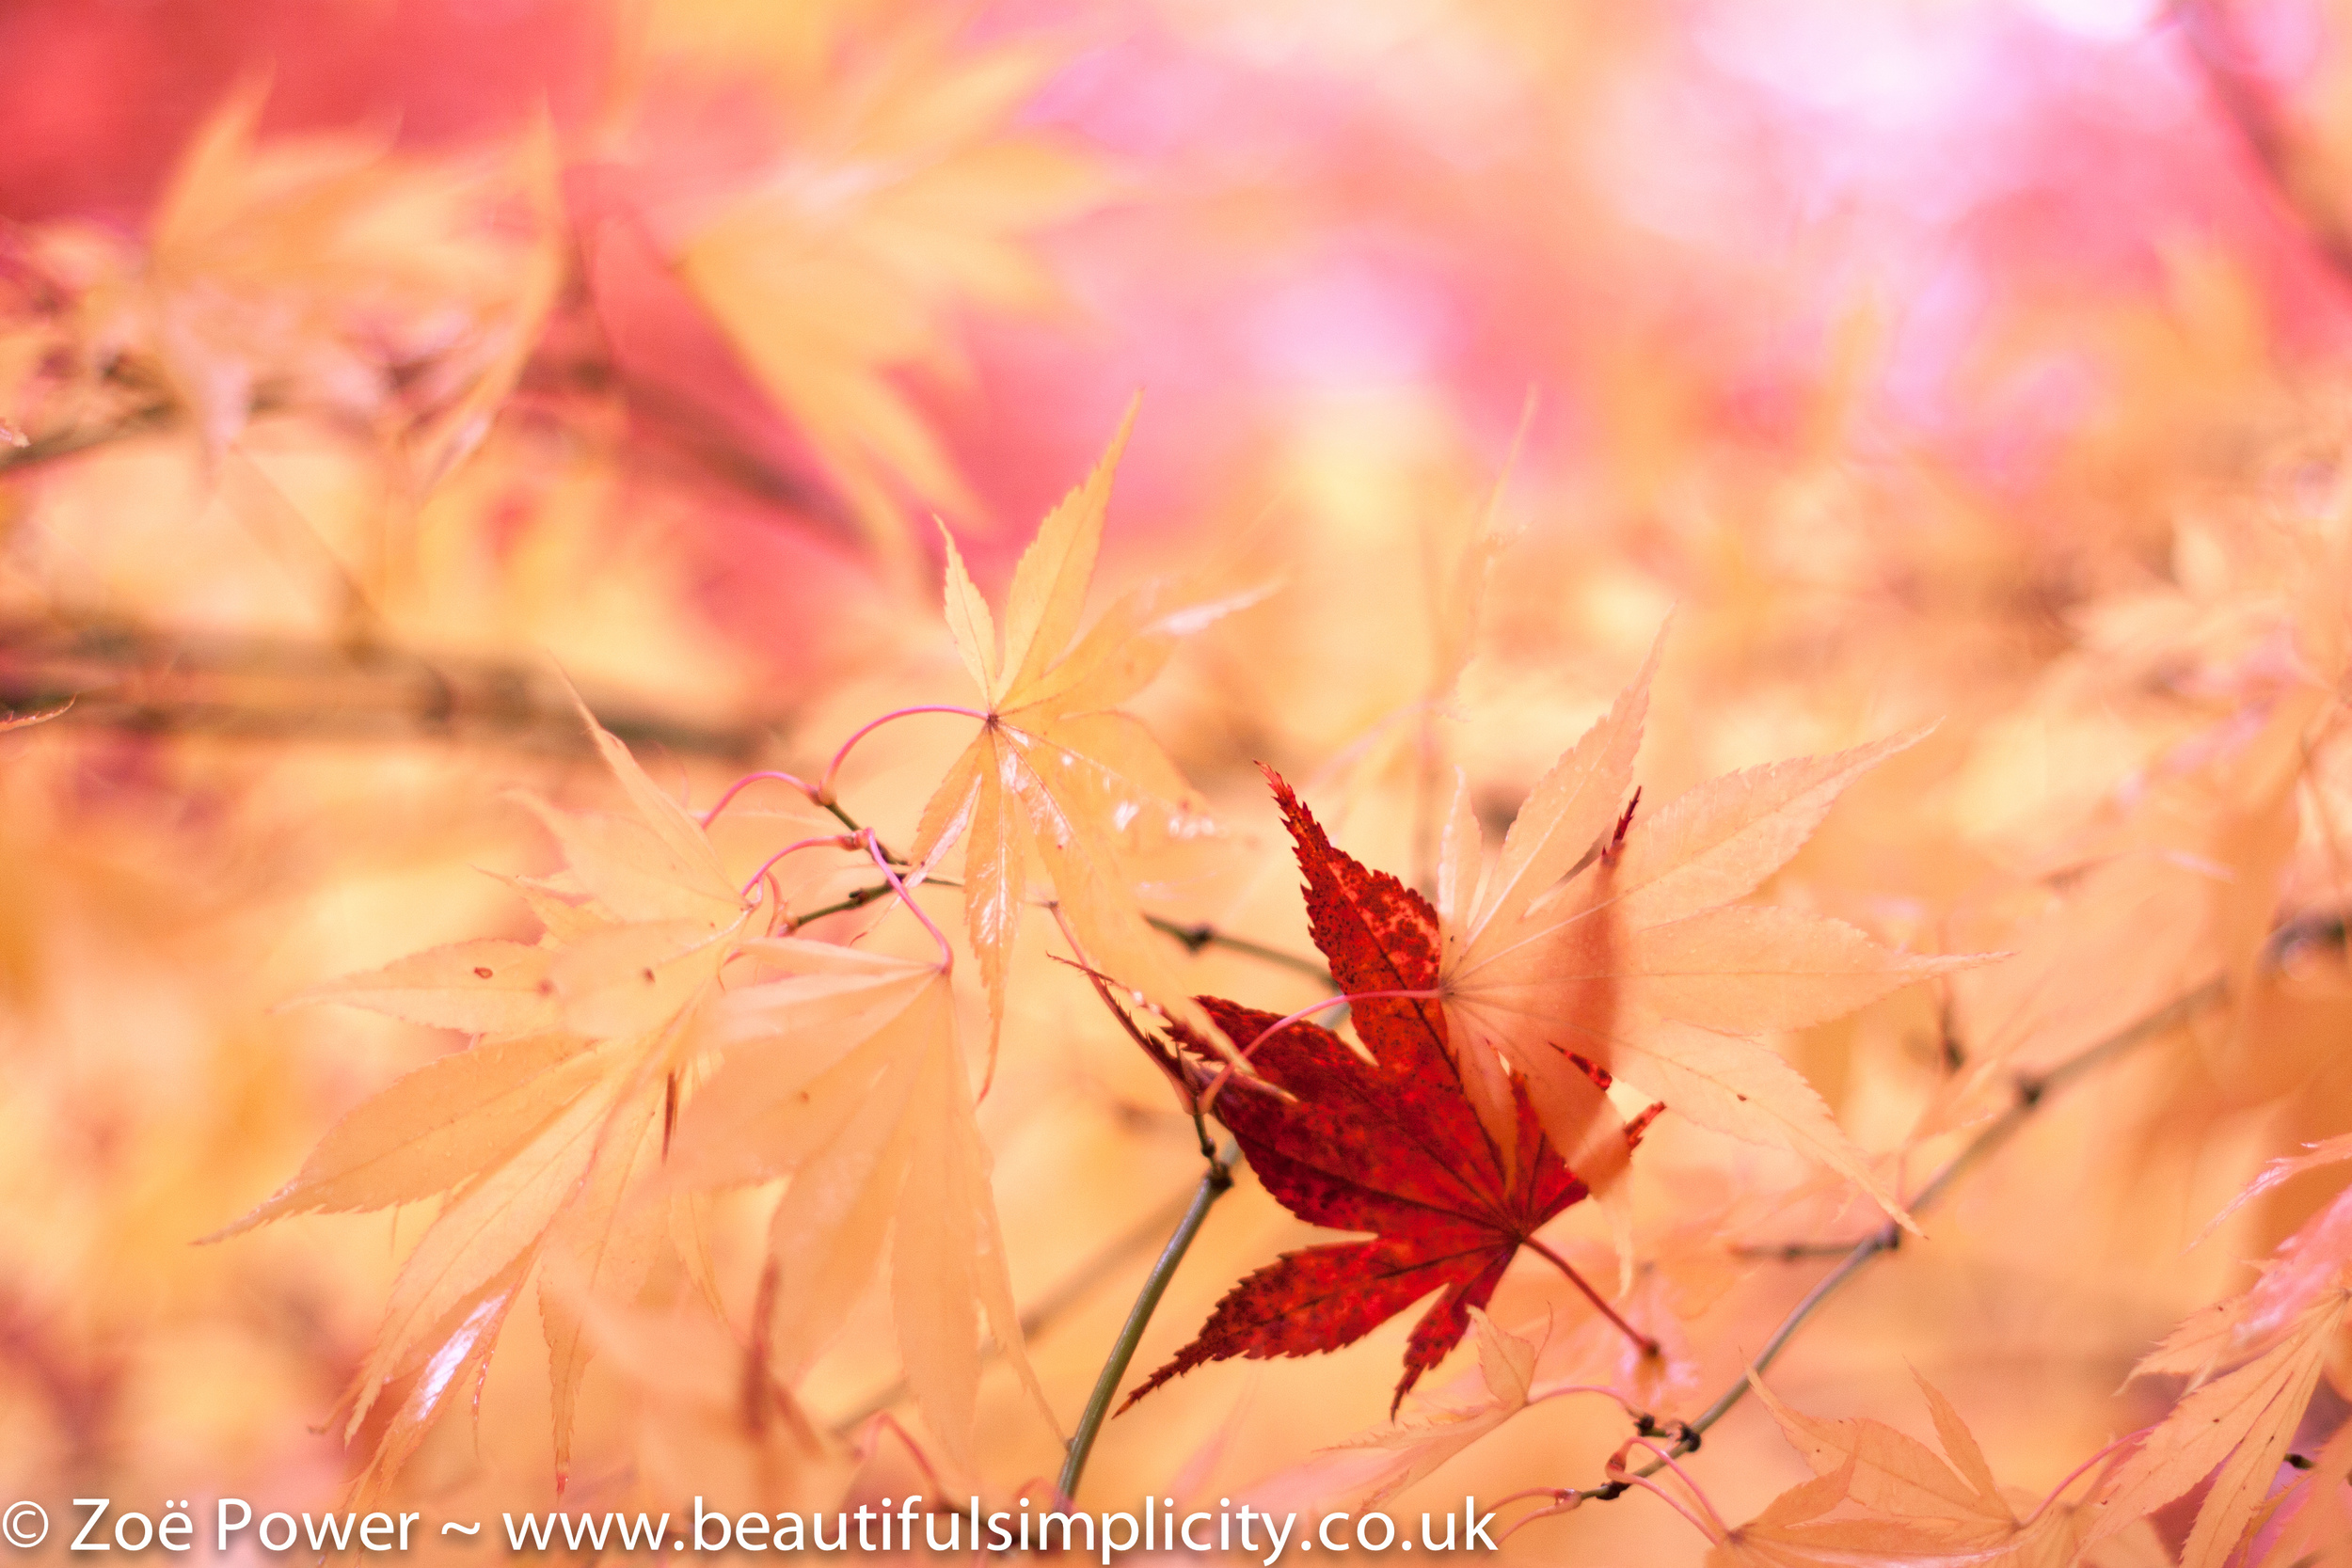 This photo was taken on my Canon 50mm f1.4 lens at f1.4. I was standing very close to the leaf.